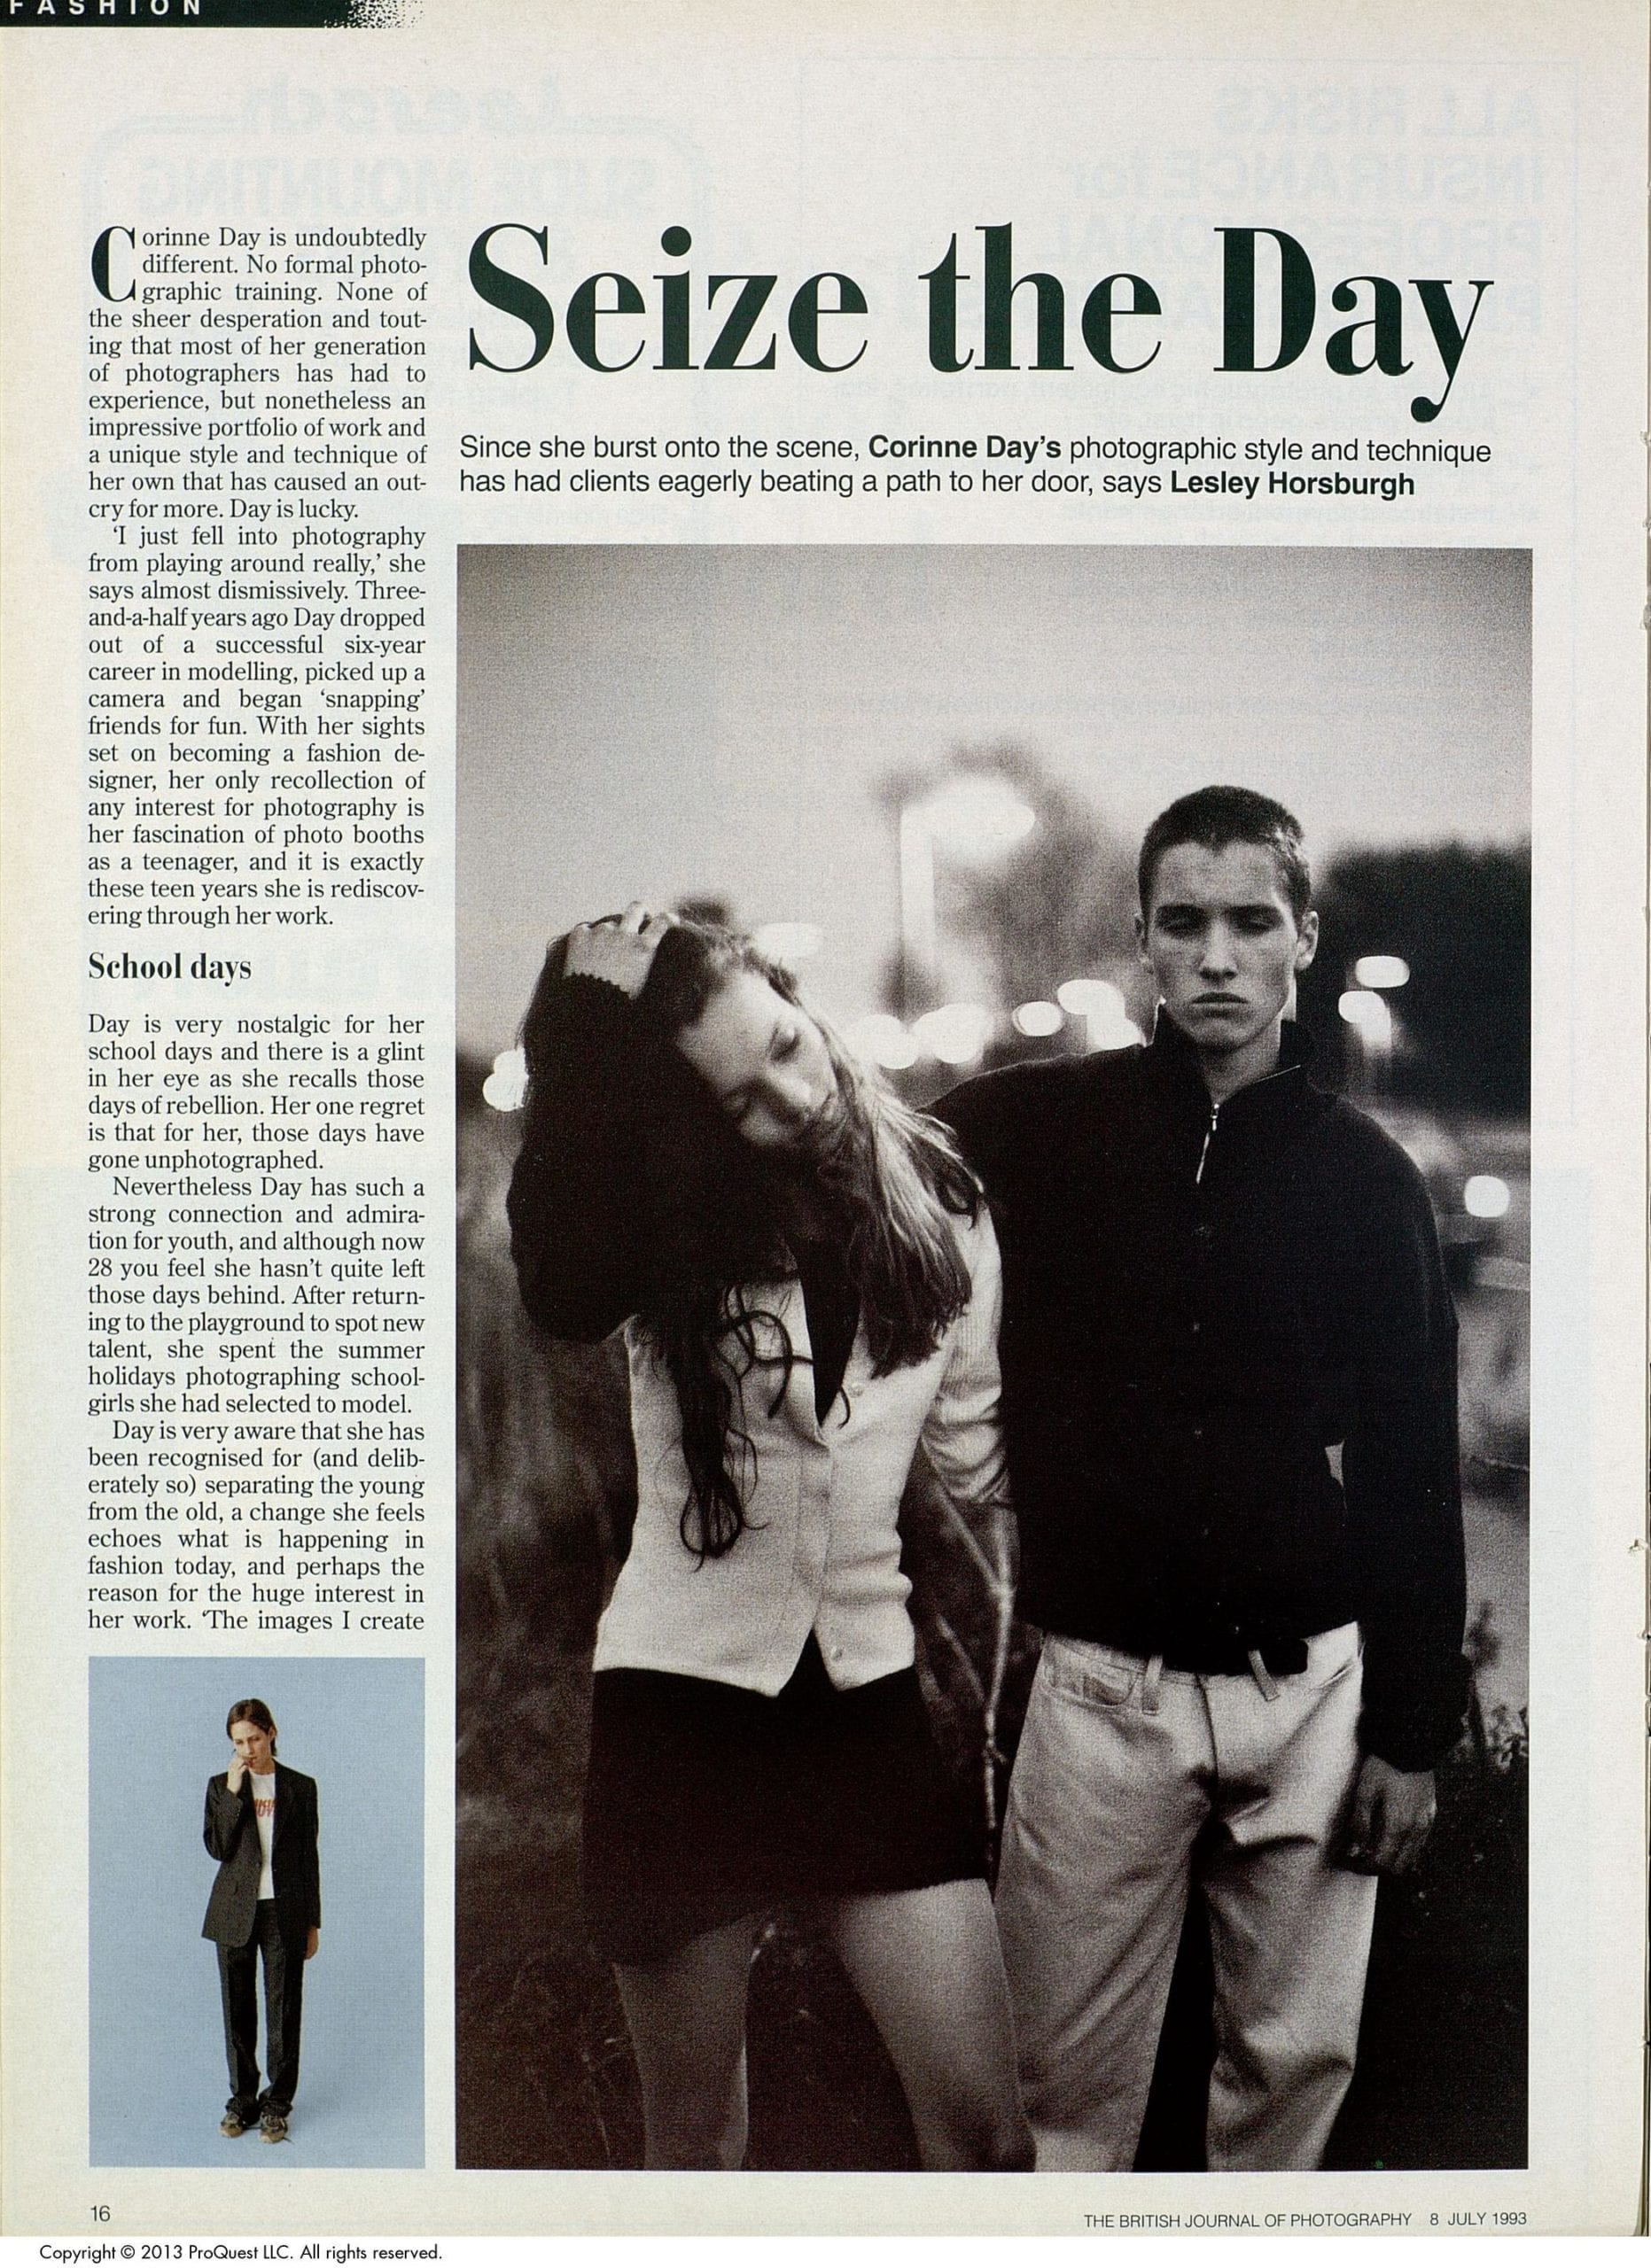 Our feature on Corinne Day, from our July 1993 issue